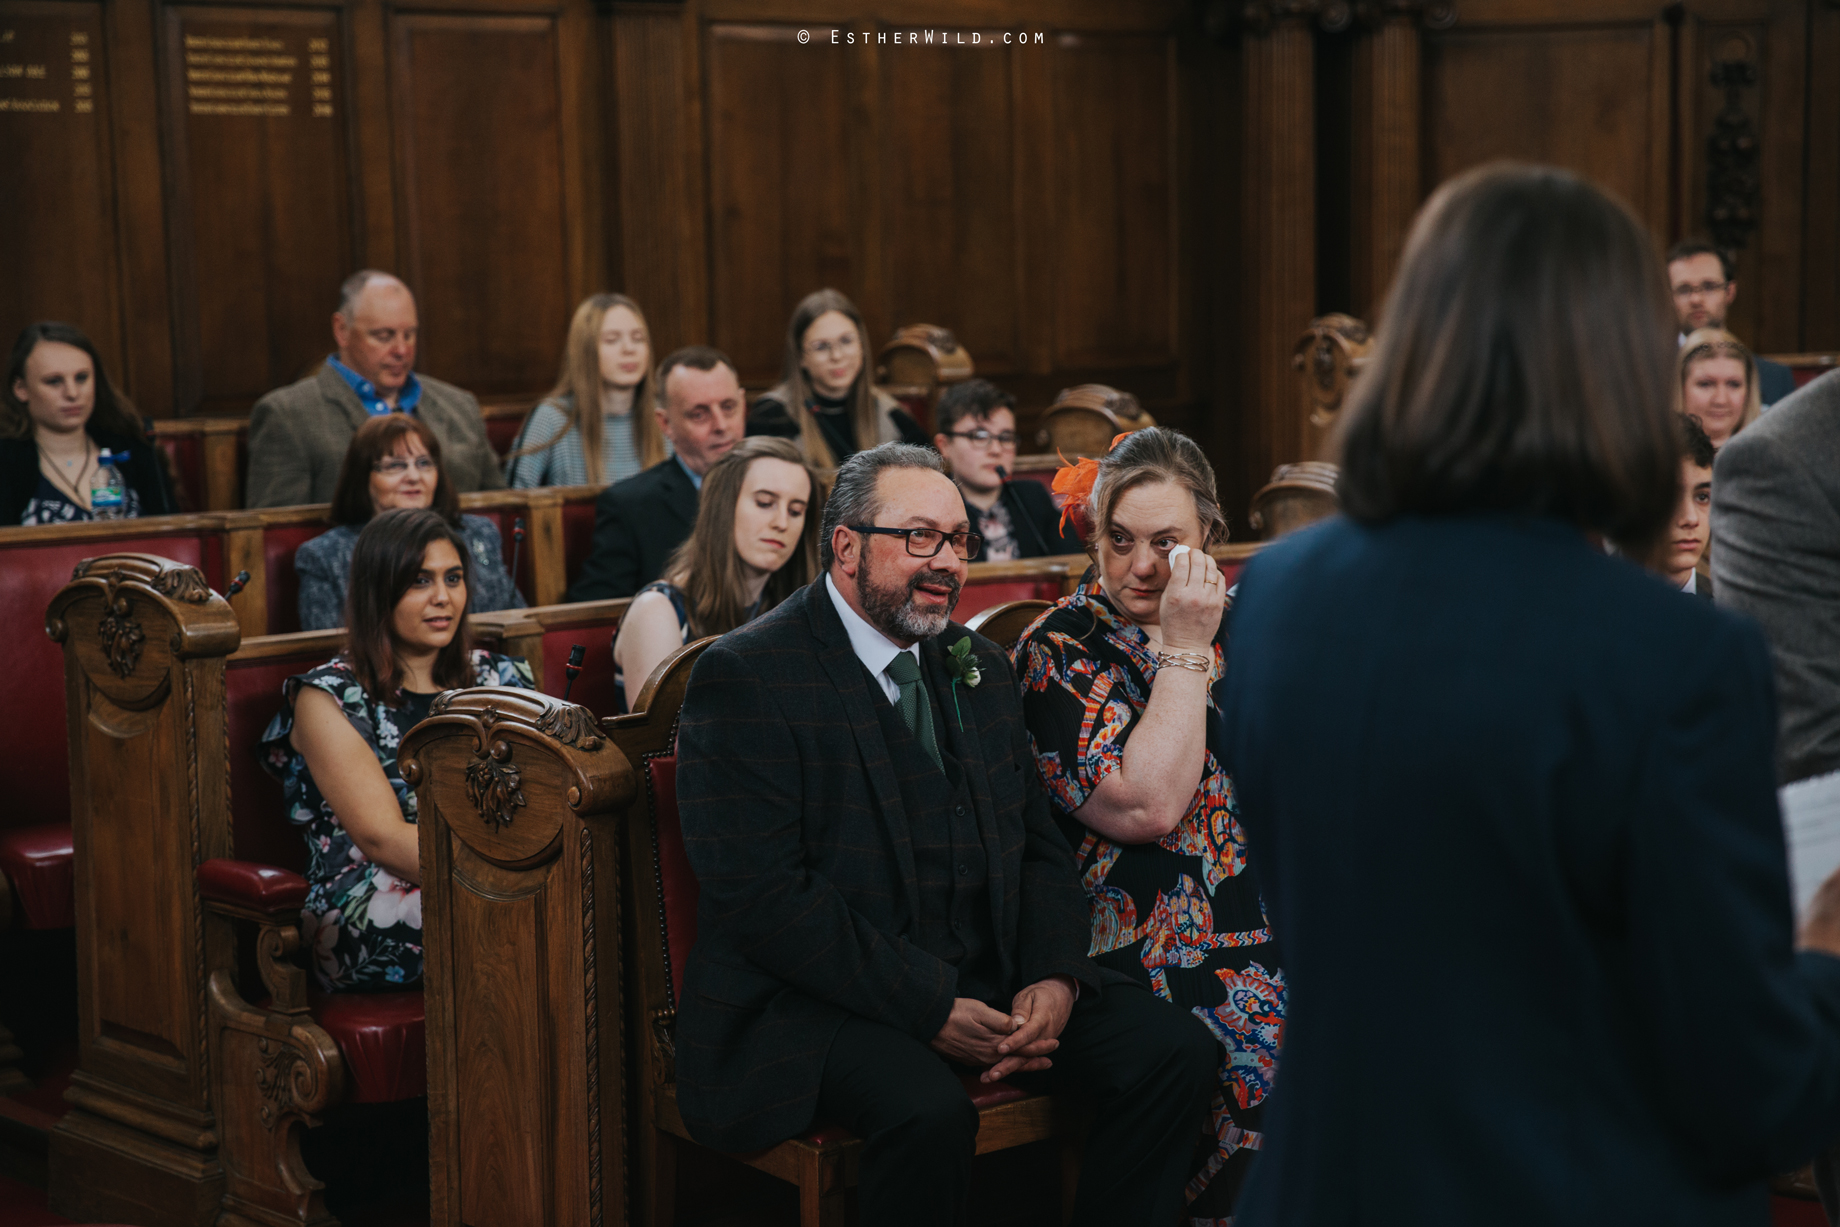 Islington_Town_Hall_Assembly_Hall_Council_Chamber_The_Star_Pub_London_Sacred_Wedding_Copyright_Esther_Wild_Photographer_IMG_0327.jpg